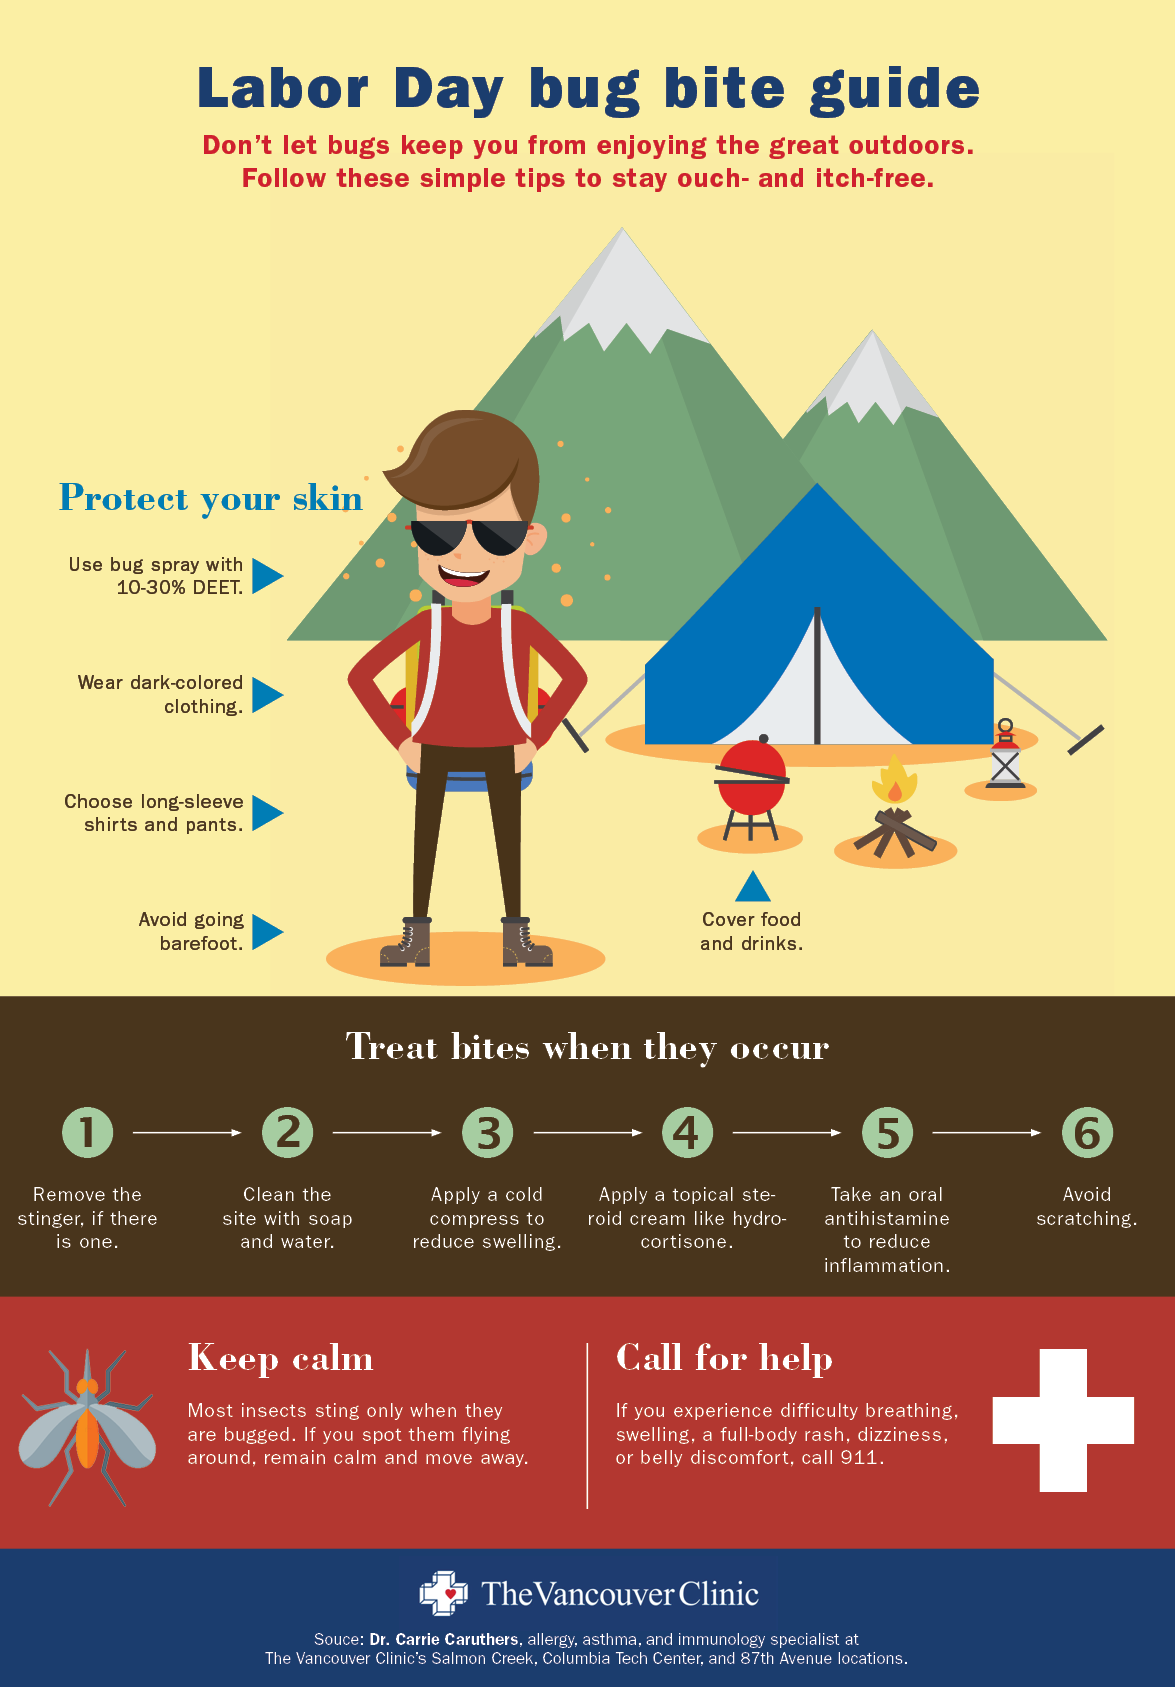 labor day bug bite guide the vancouver clinic